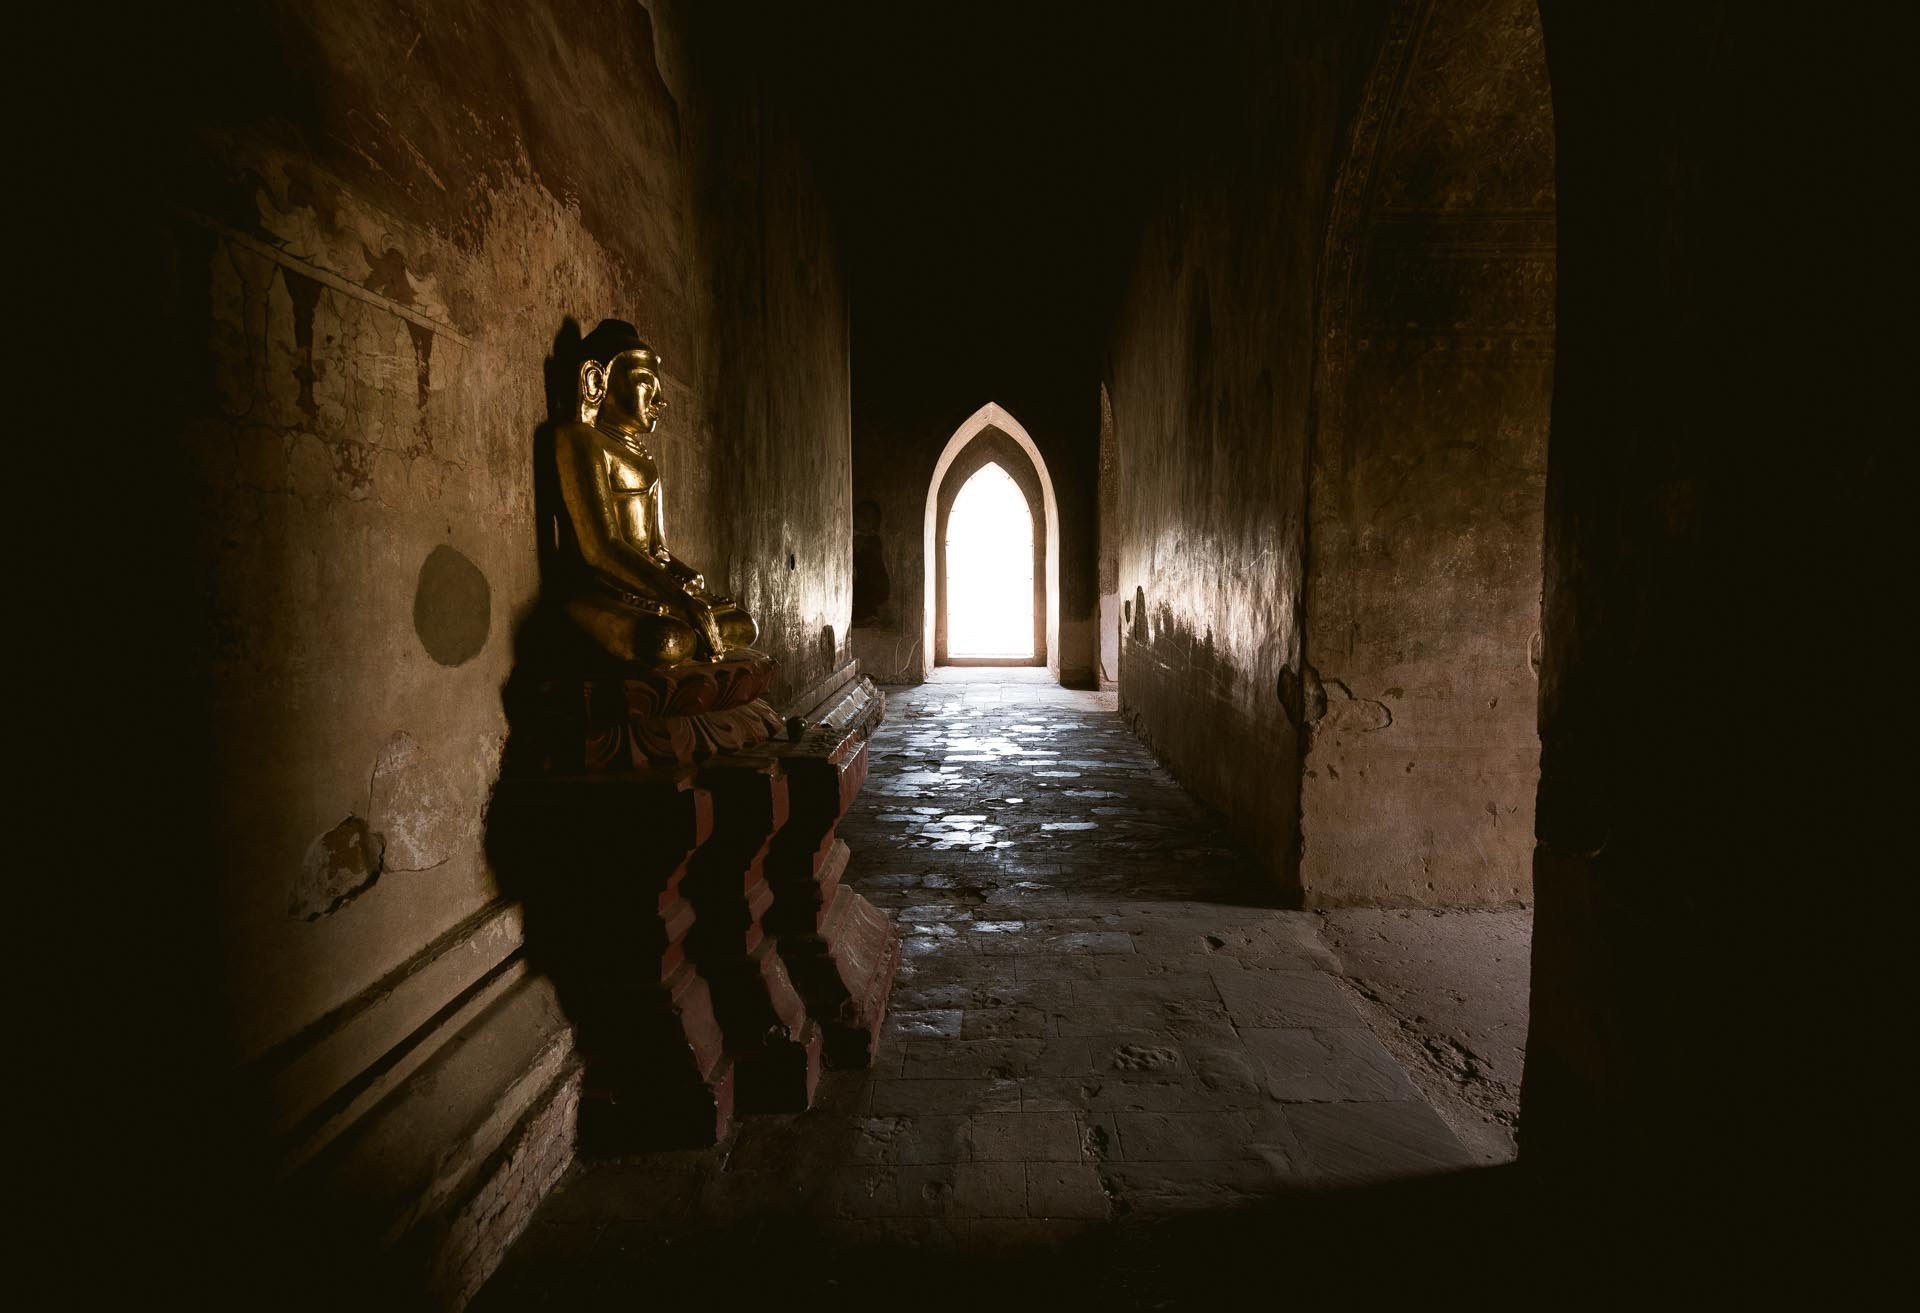 Golden Buddha inside a temple in Bagan. Myanmar